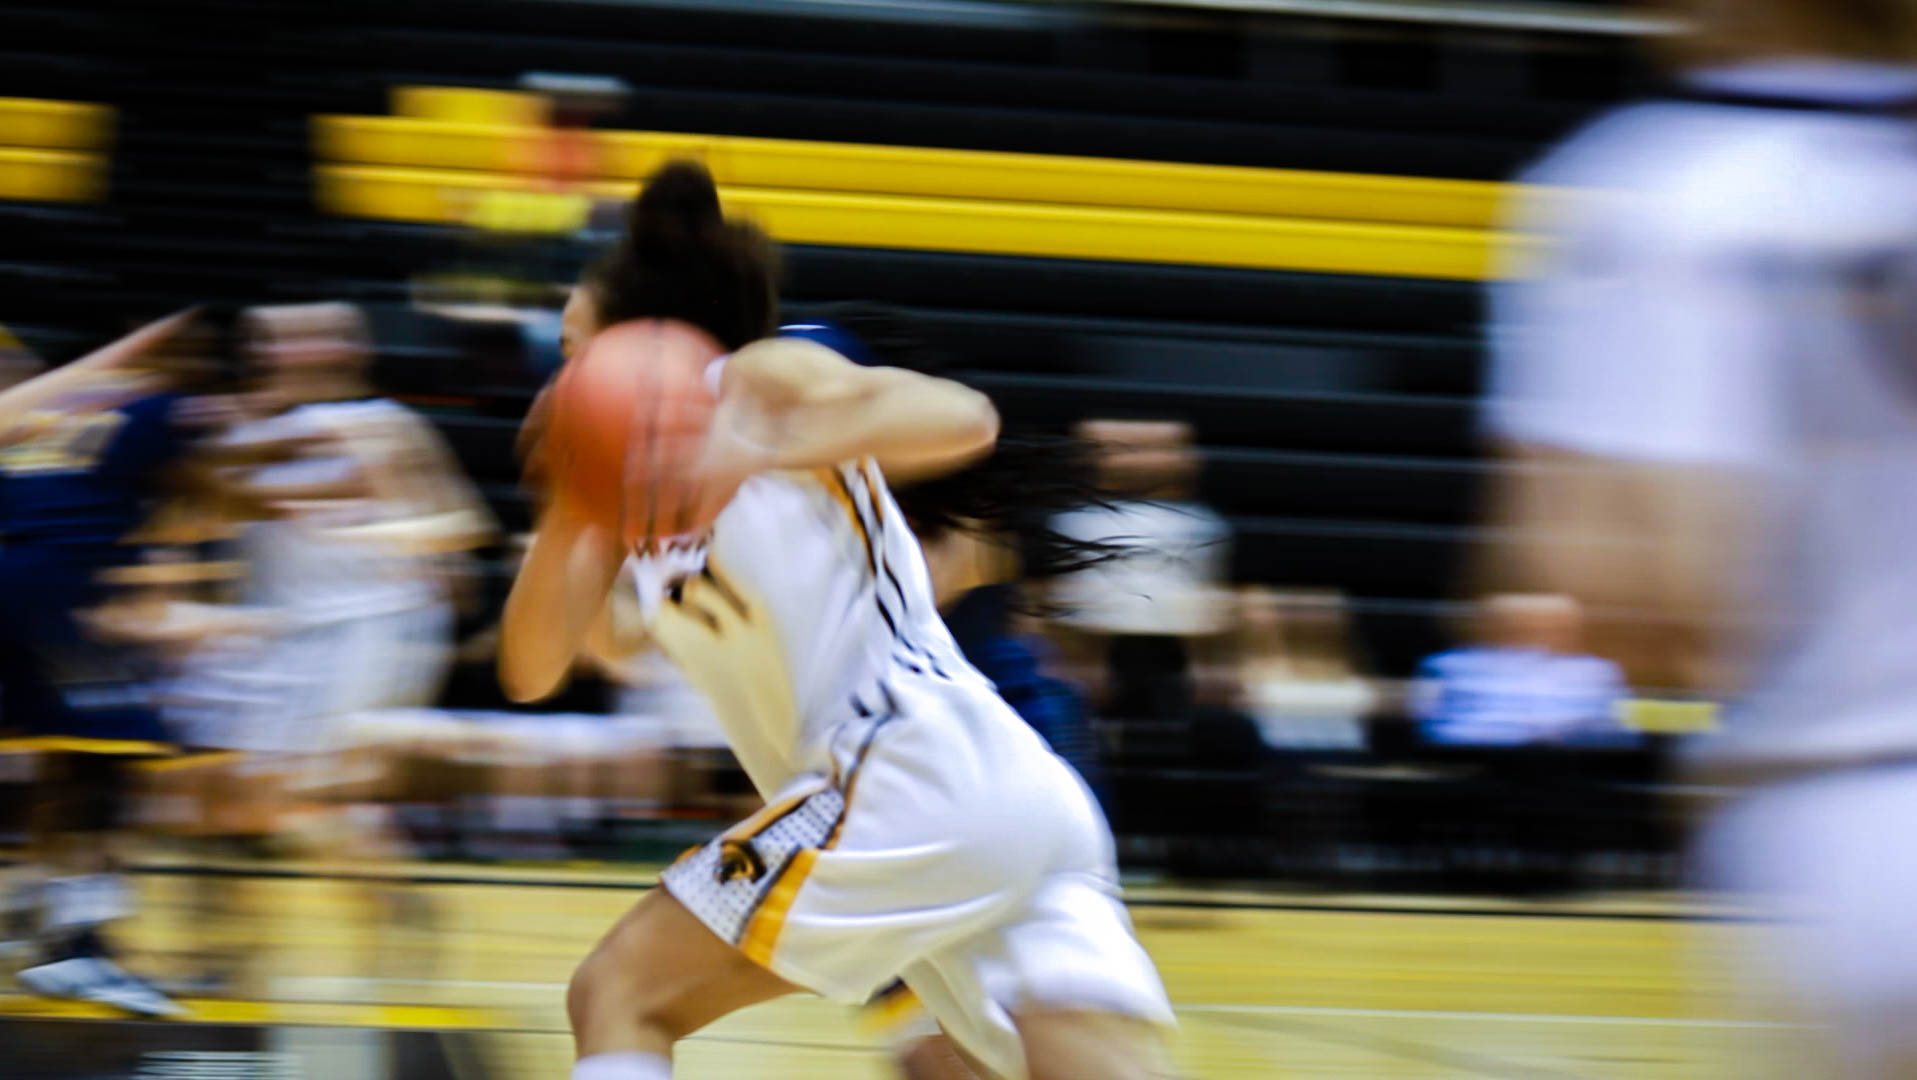 motion blurred image of girl playing basketball